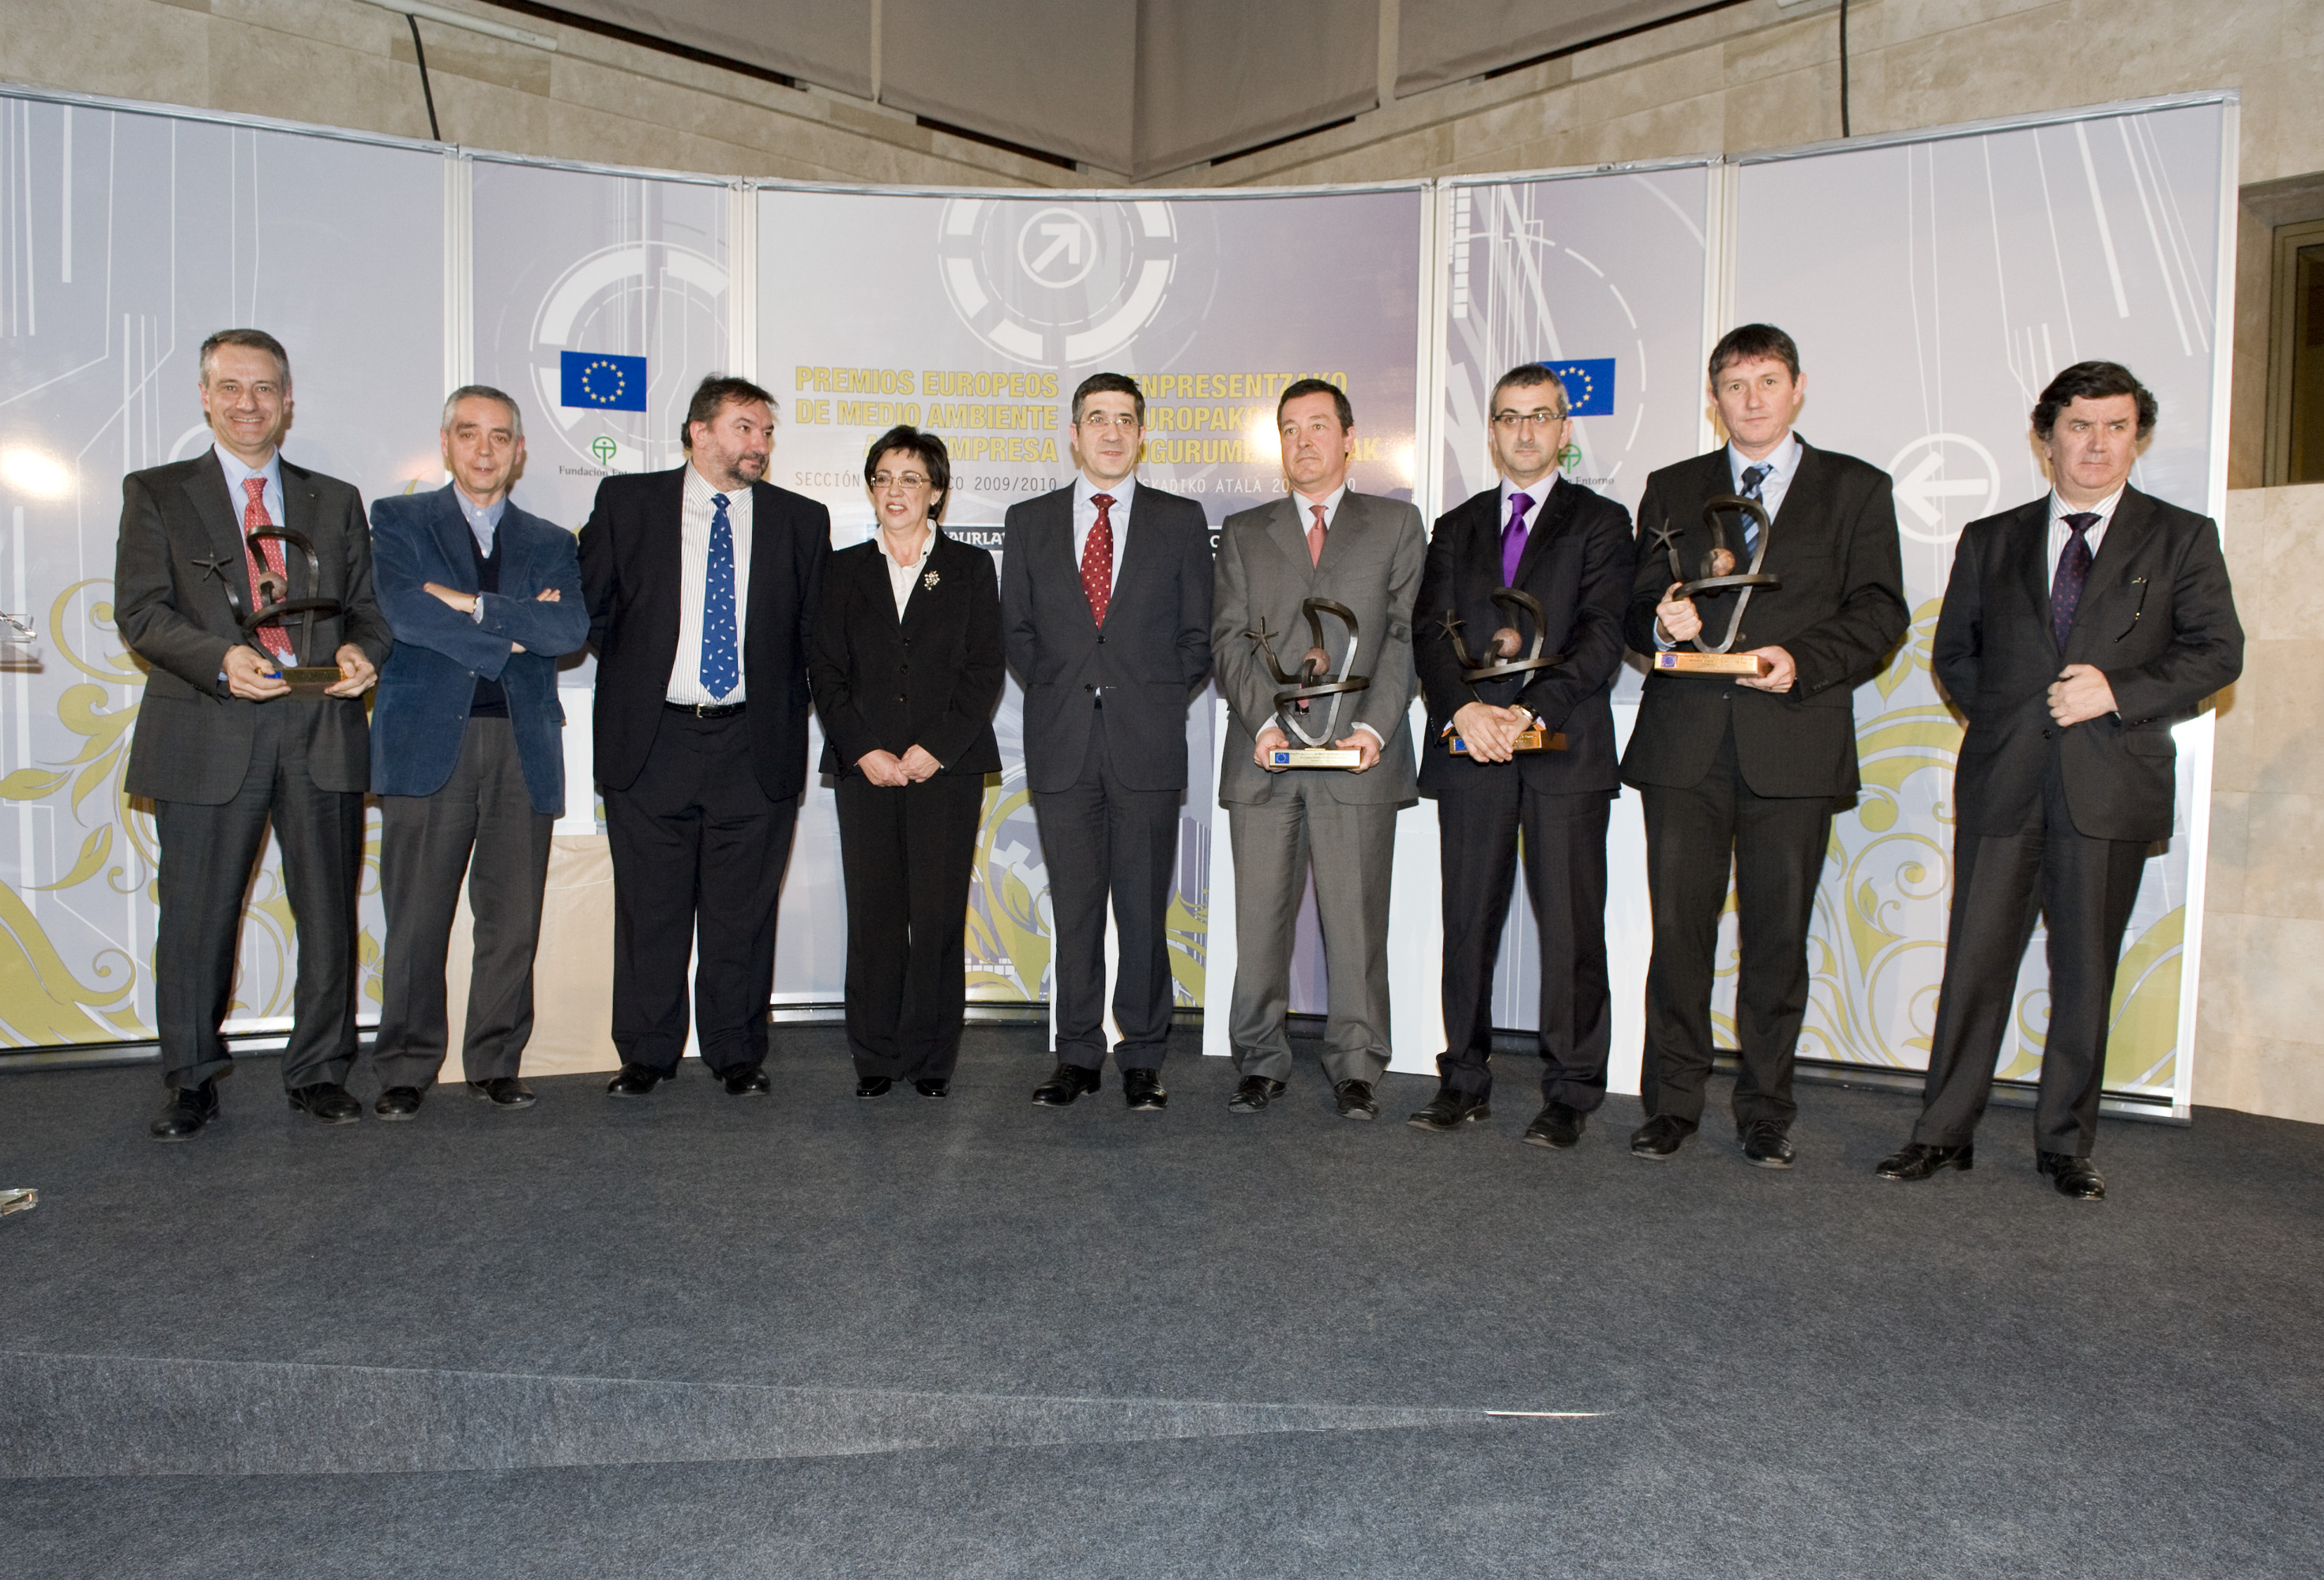 premios05.jpg